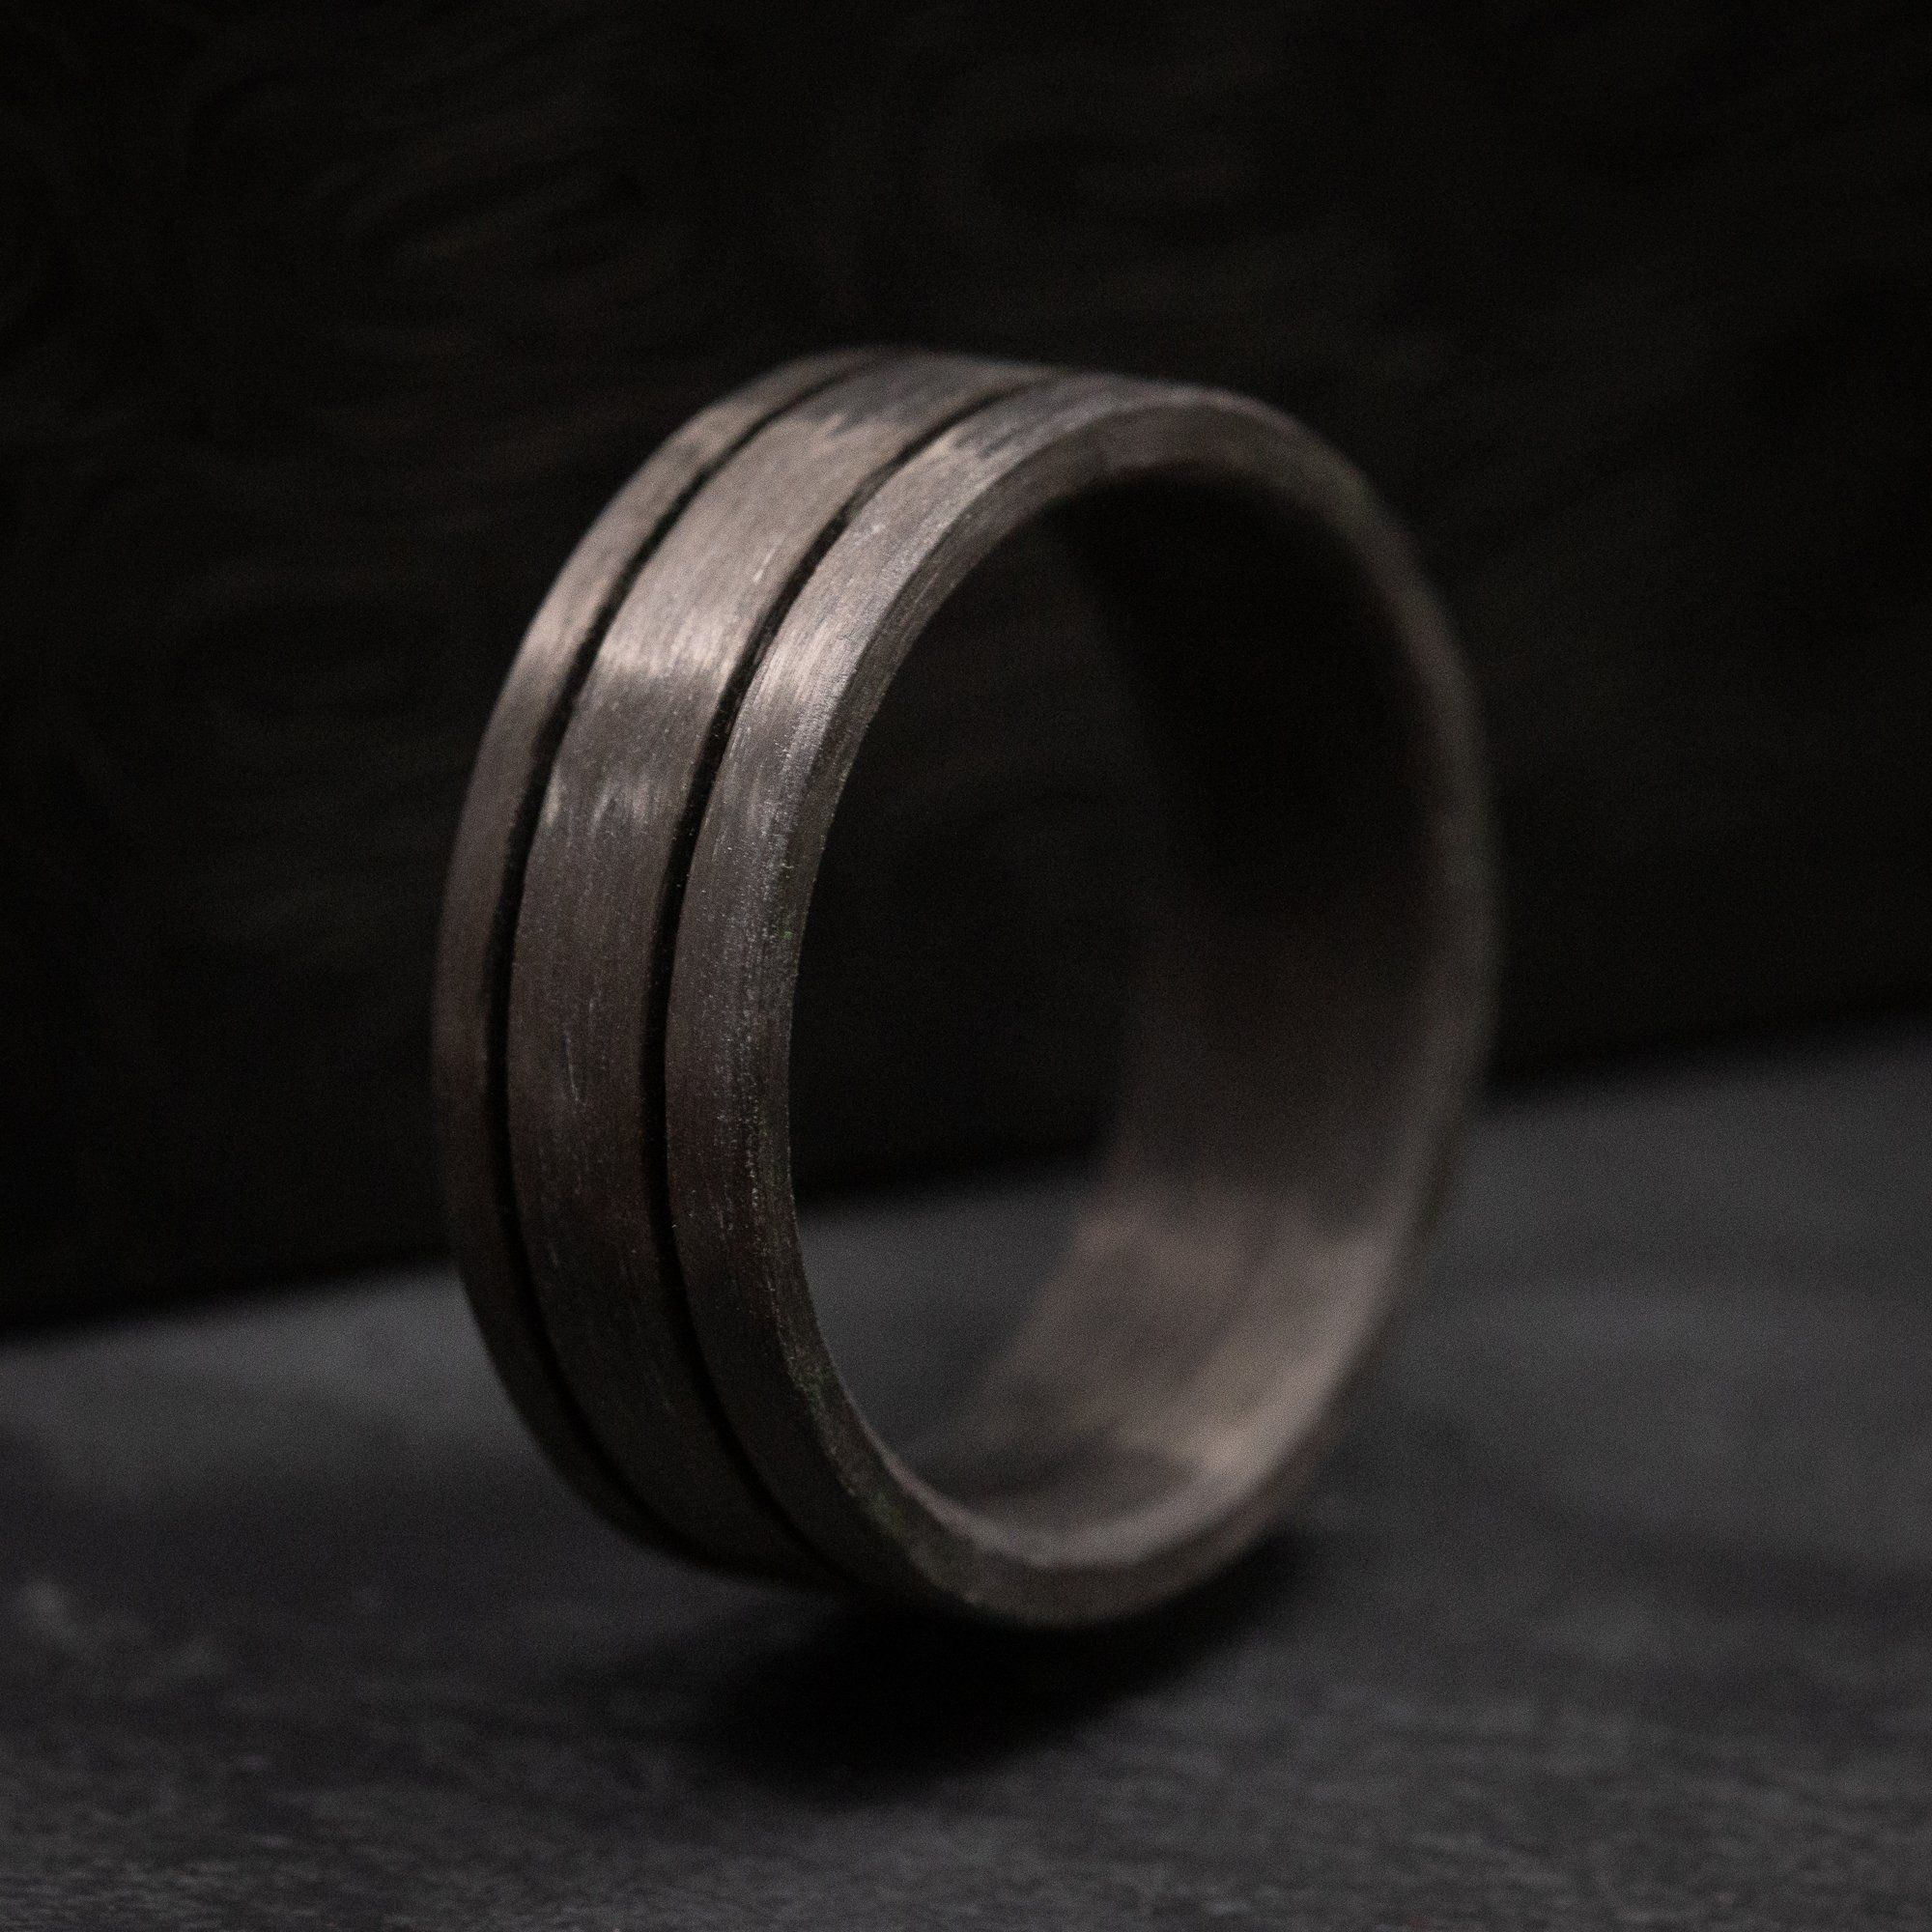 Solid Carbon Fiber From The Vault Pre Made Ring Size 10 25 Size 10 Rings Ring Size Rings